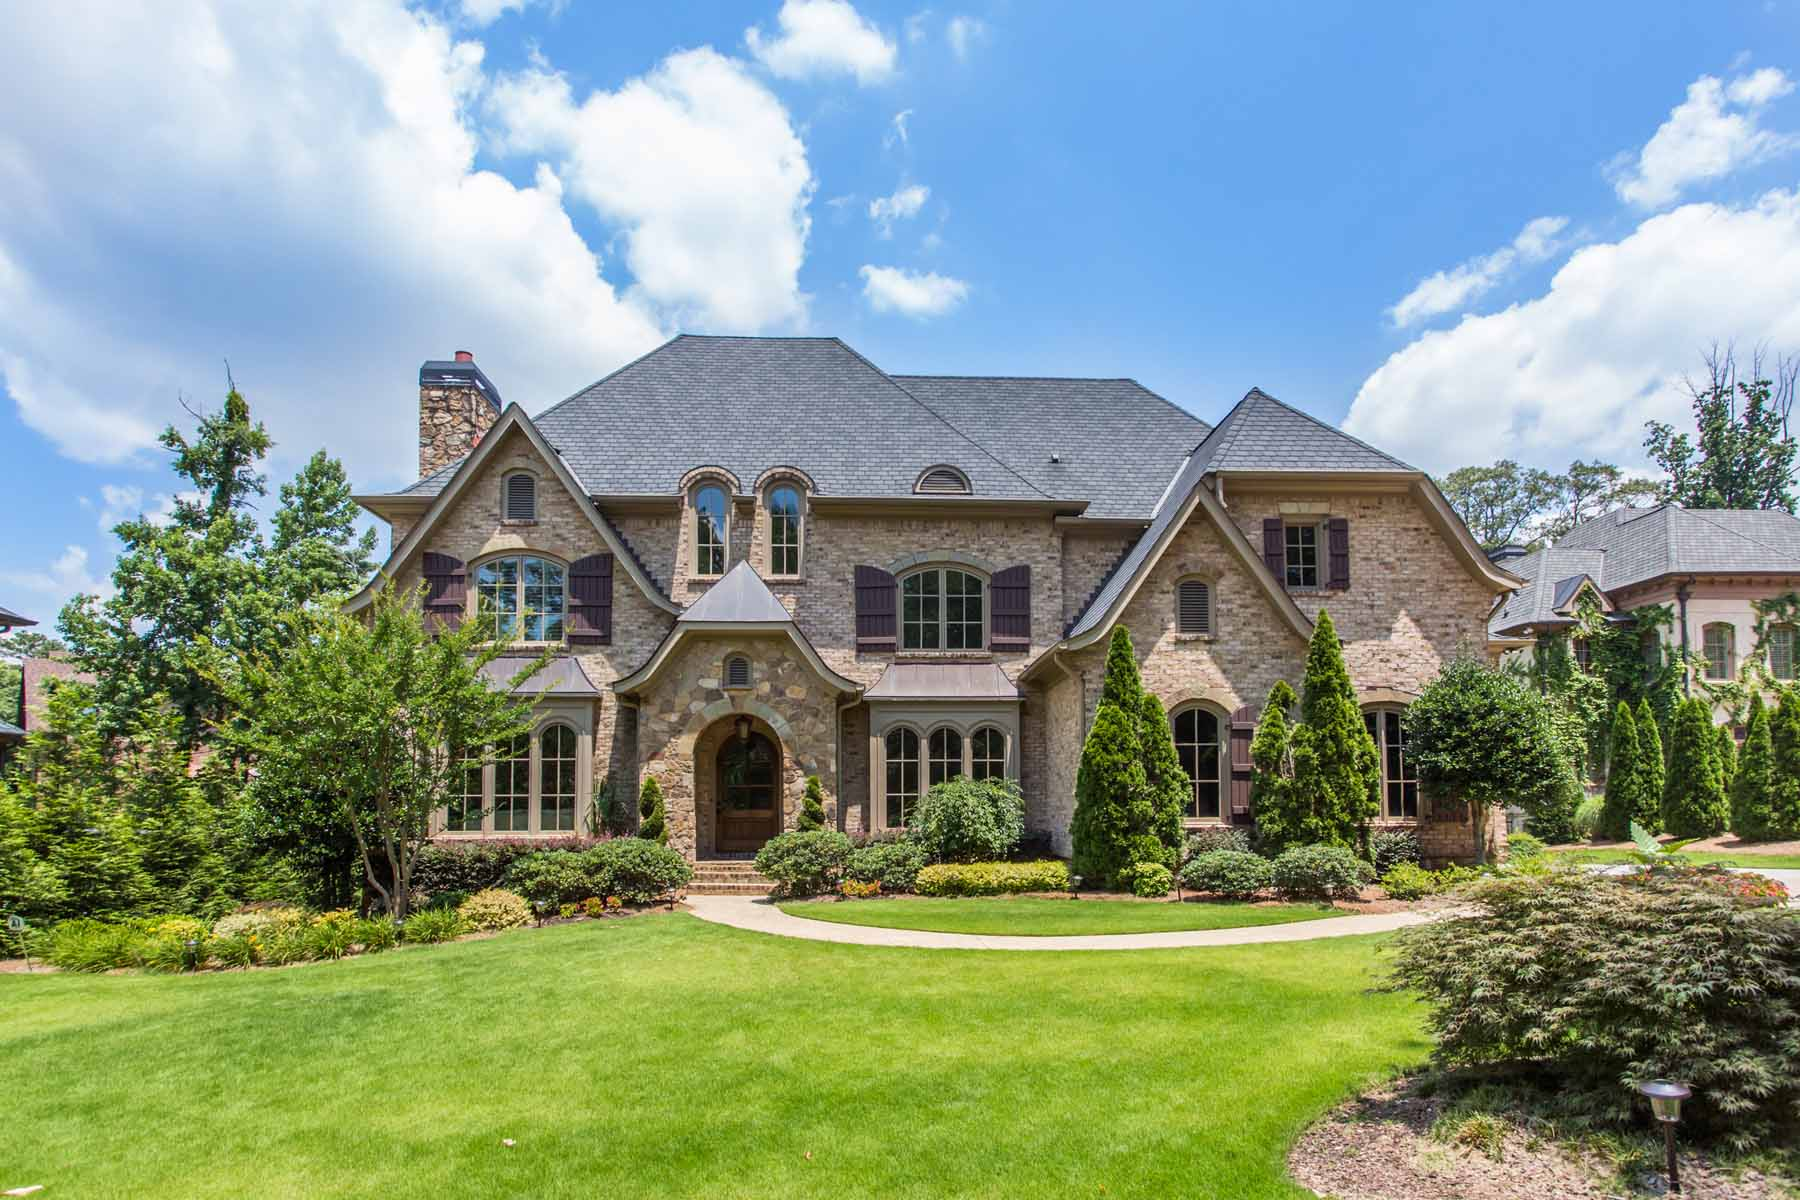 Single Family Home for Sale at An Exquisite Estate in Windsor Oaks 1688 Windsor Parkway Atlanta, Georgia, 30319 United States